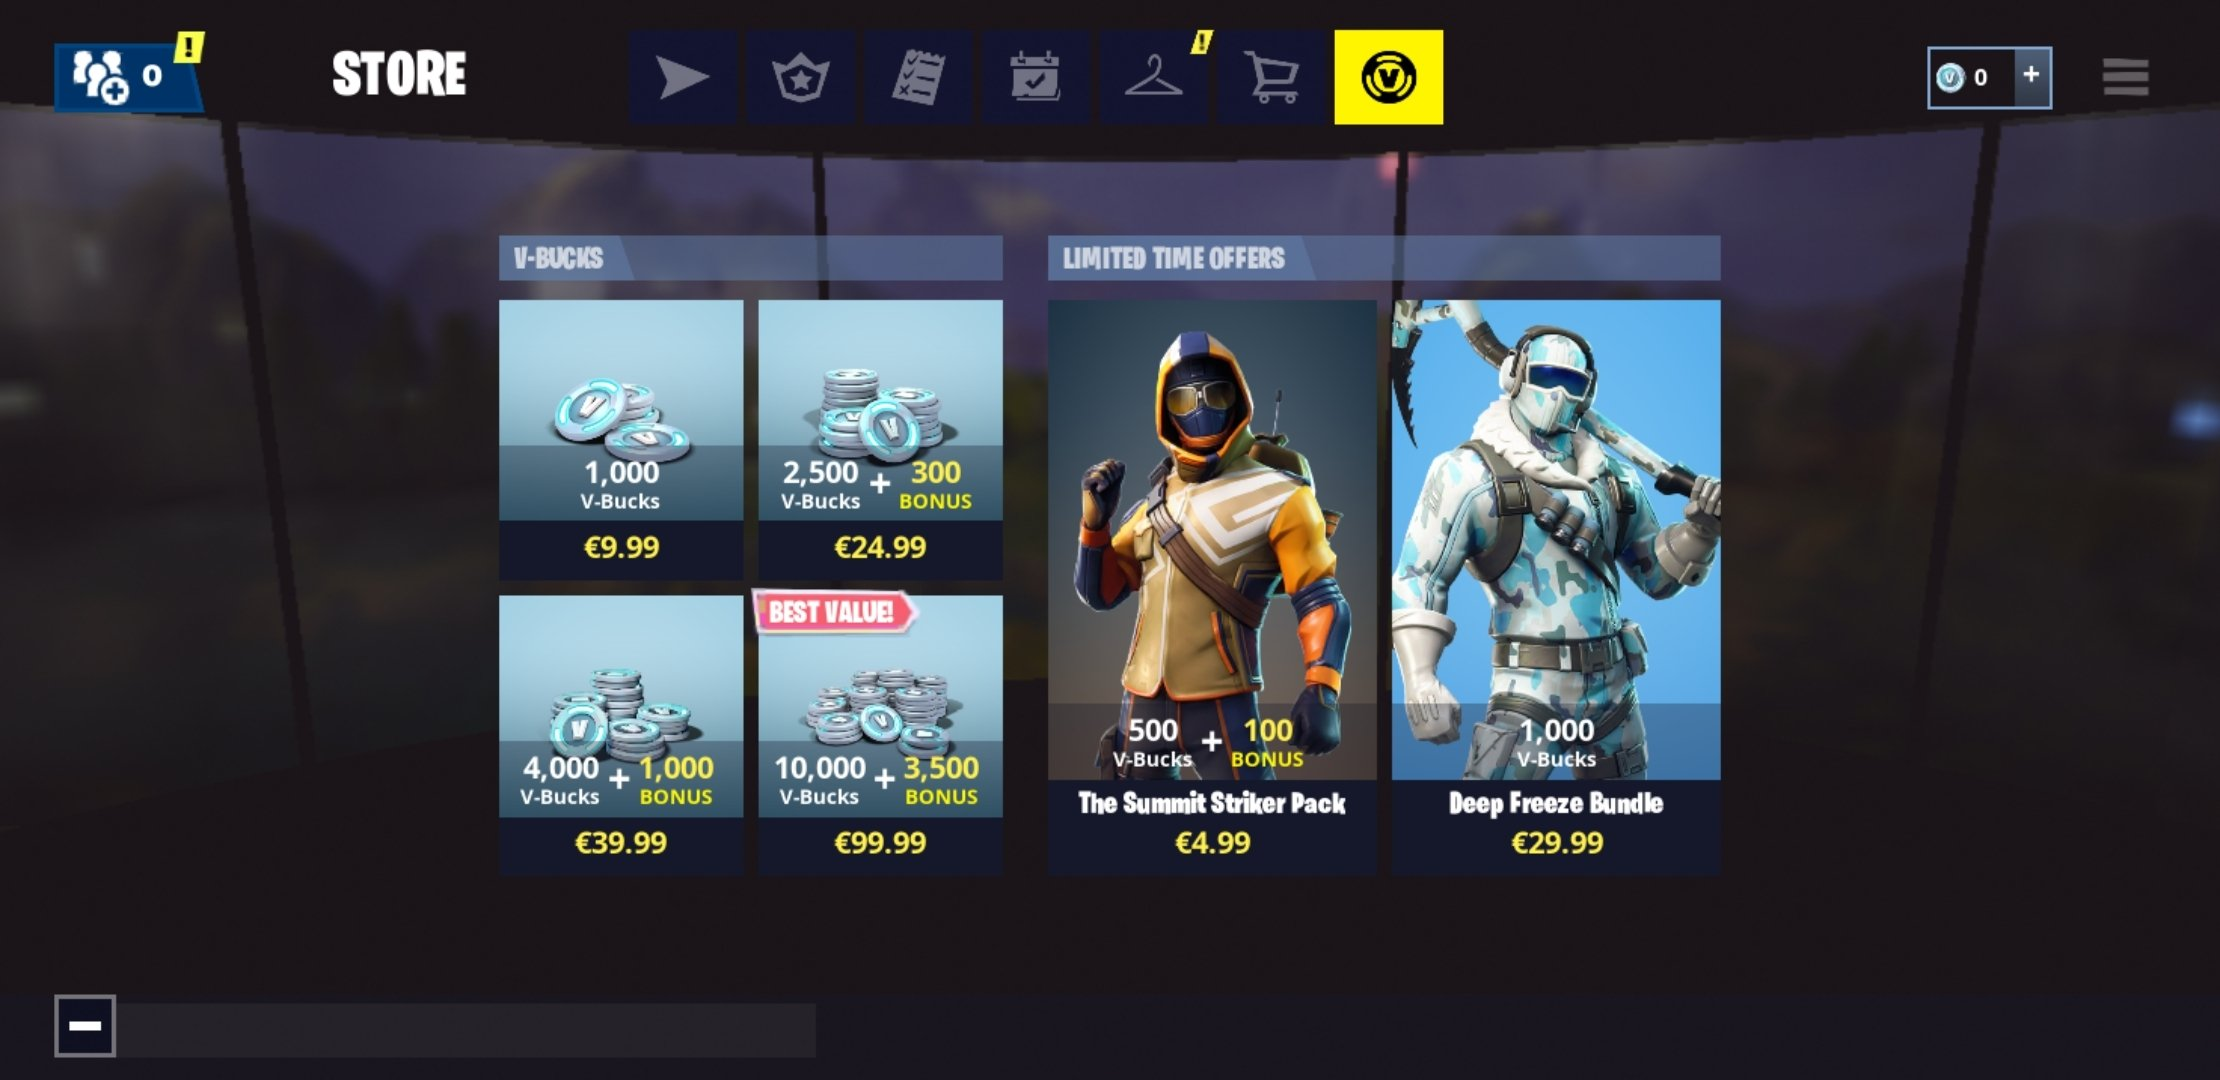 Fortnite 7 10 0 4669483 Download Fur Android Apk Kostenlos